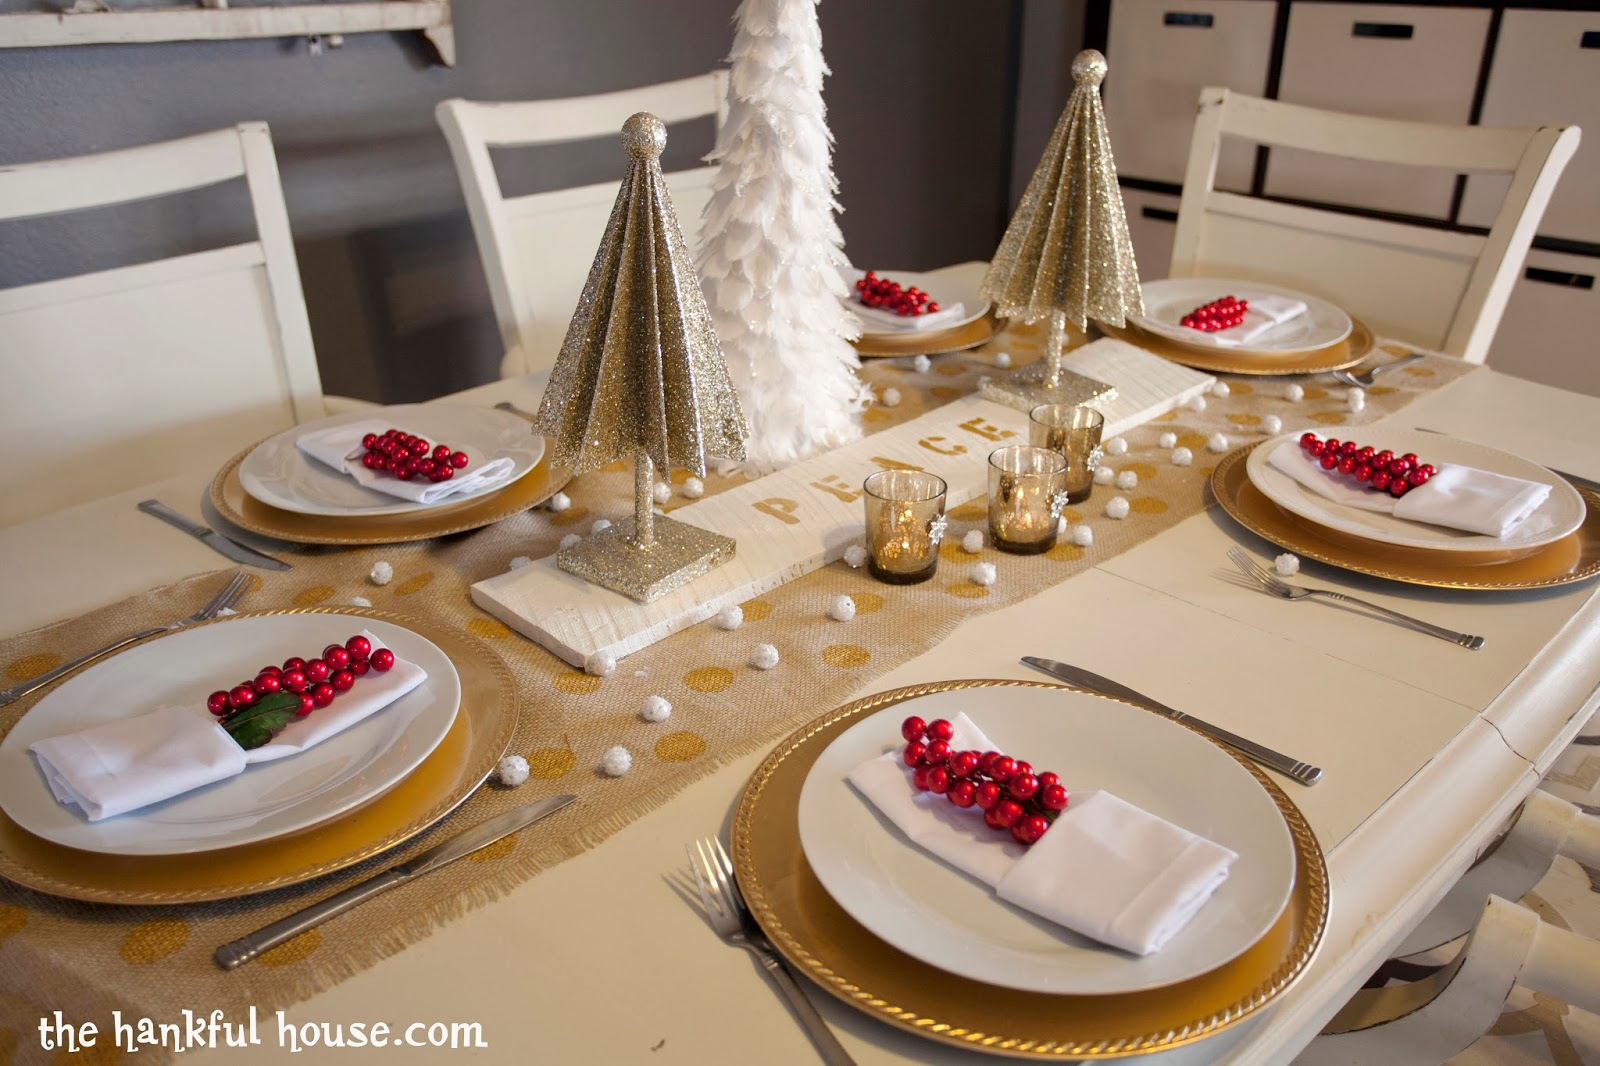 17 spectacular photo of white and gold table settings concept home living now. Black Bedroom Furniture Sets. Home Design Ideas